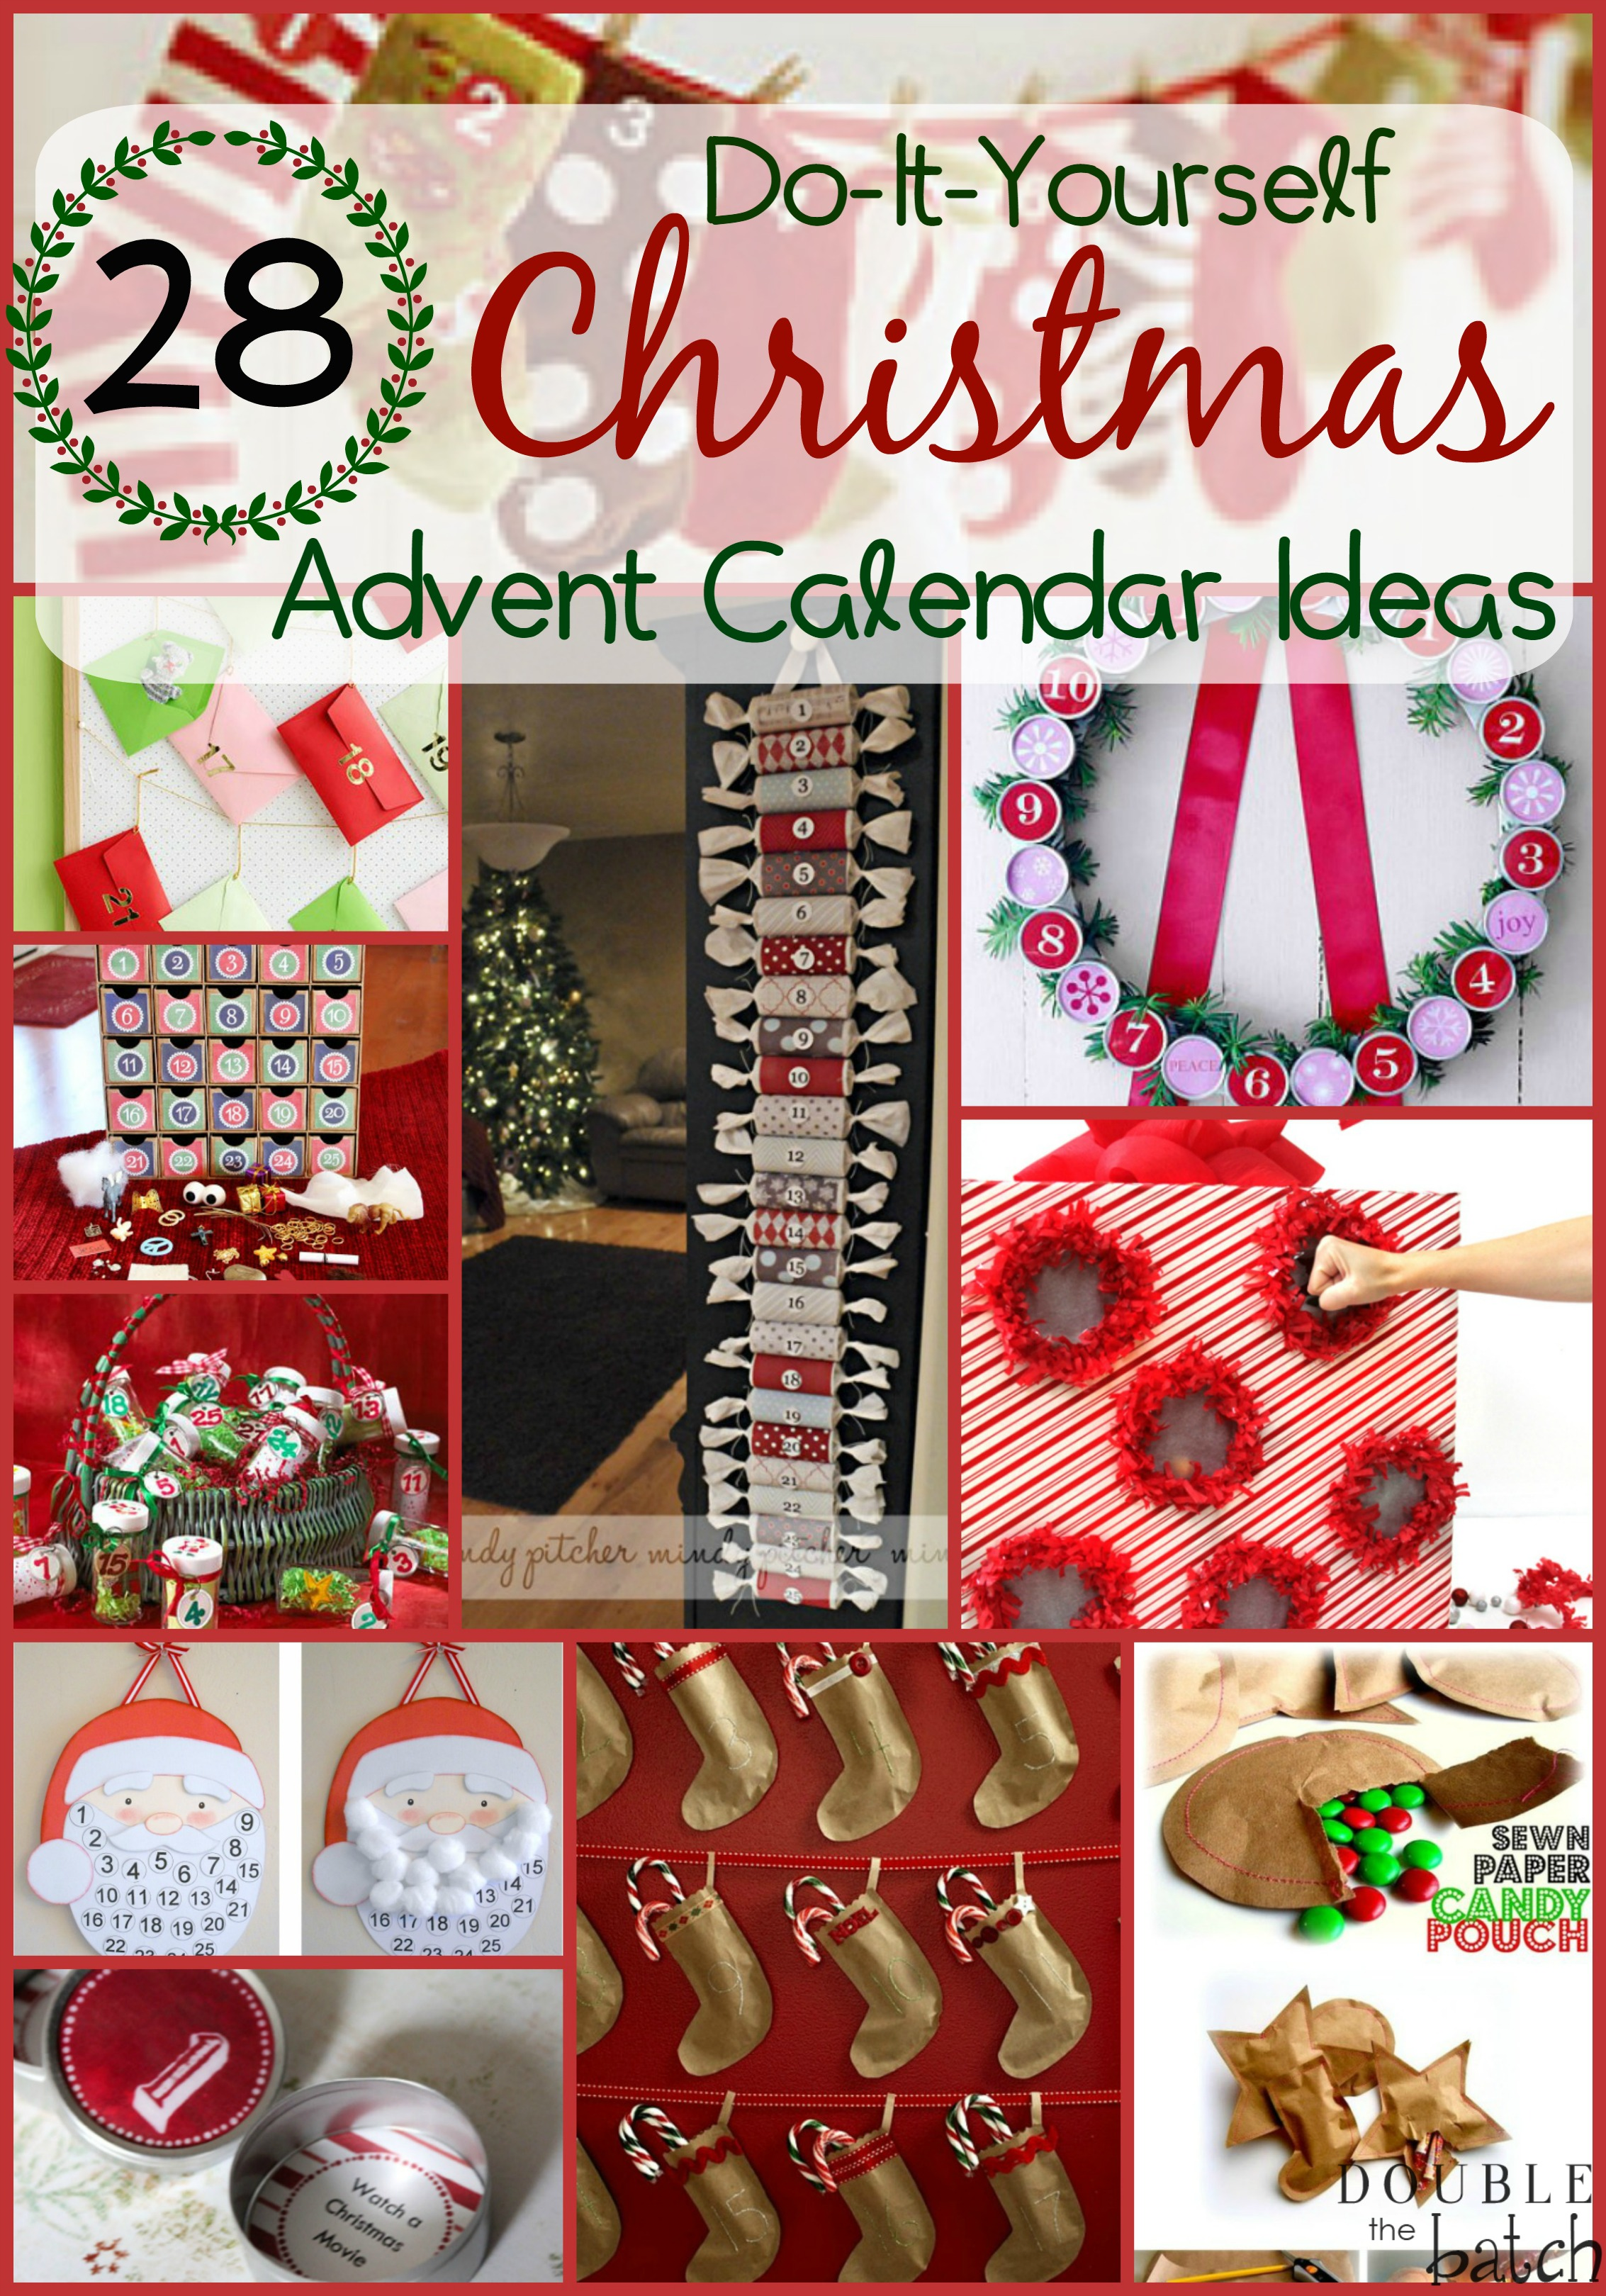 Advent Calendar Adults Diy : Diy christmas advent calendar ideas